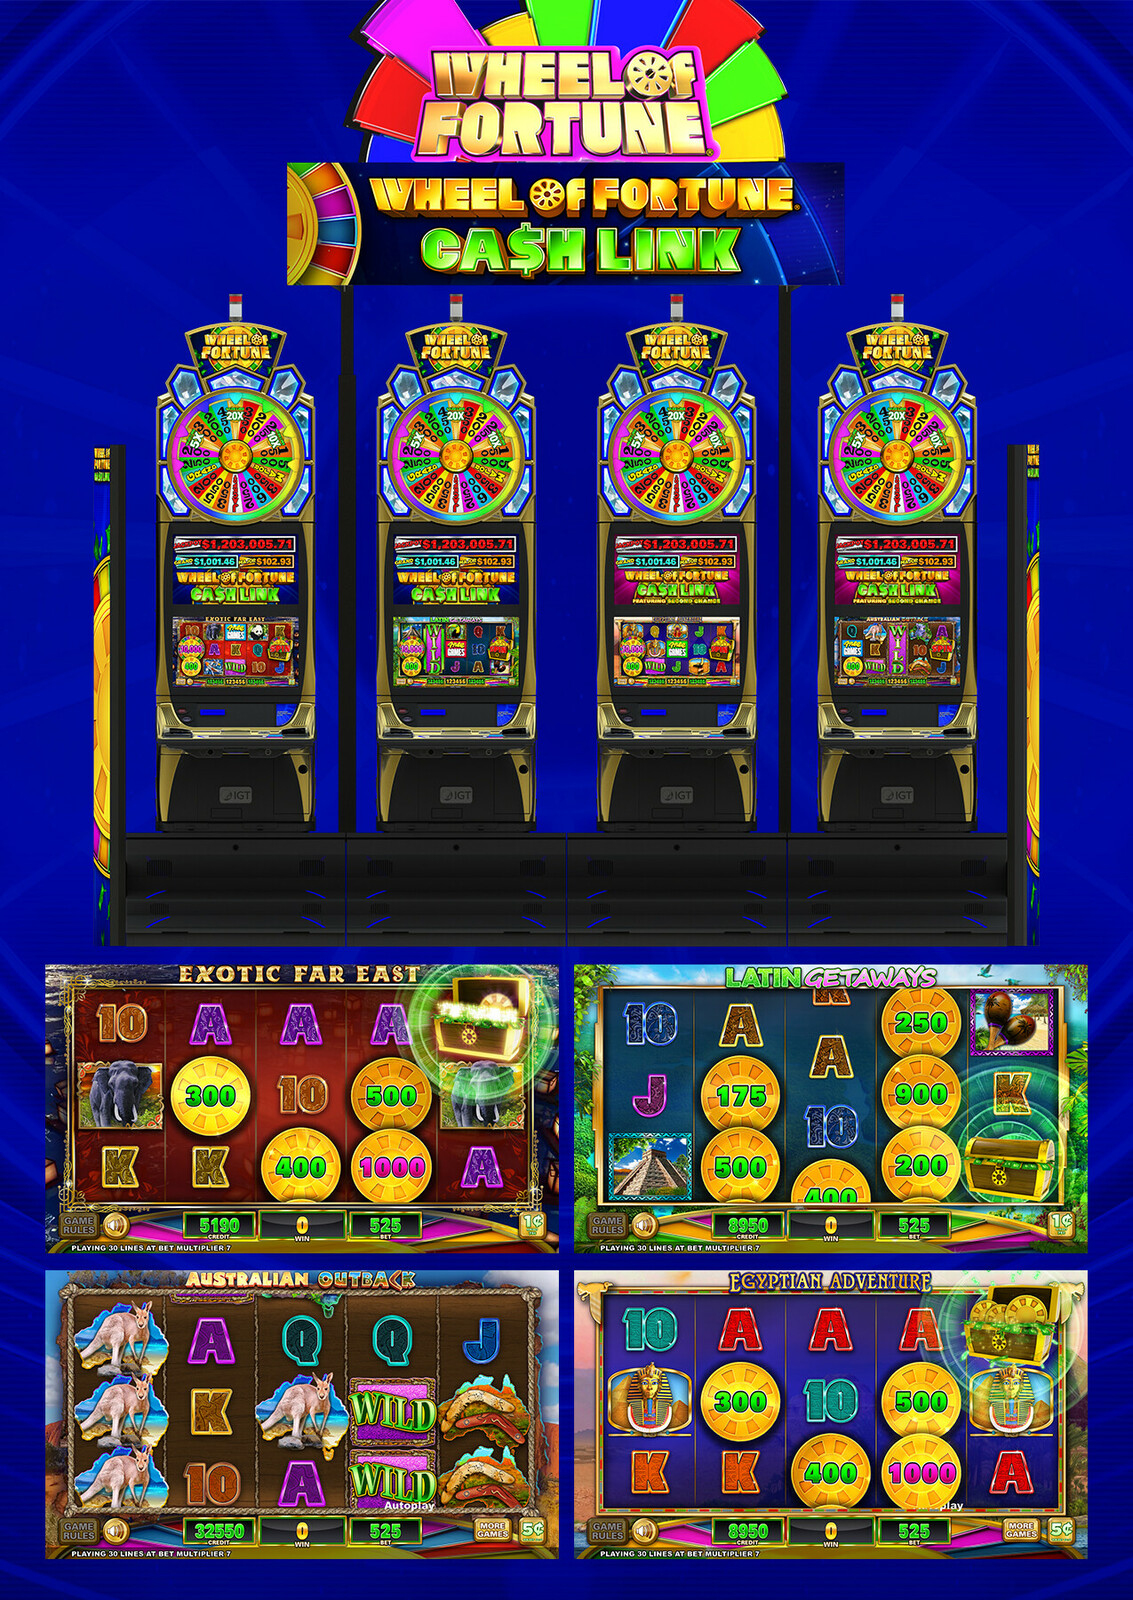 Wheel of Fortune® Cash Link™ Video Slots by IGT